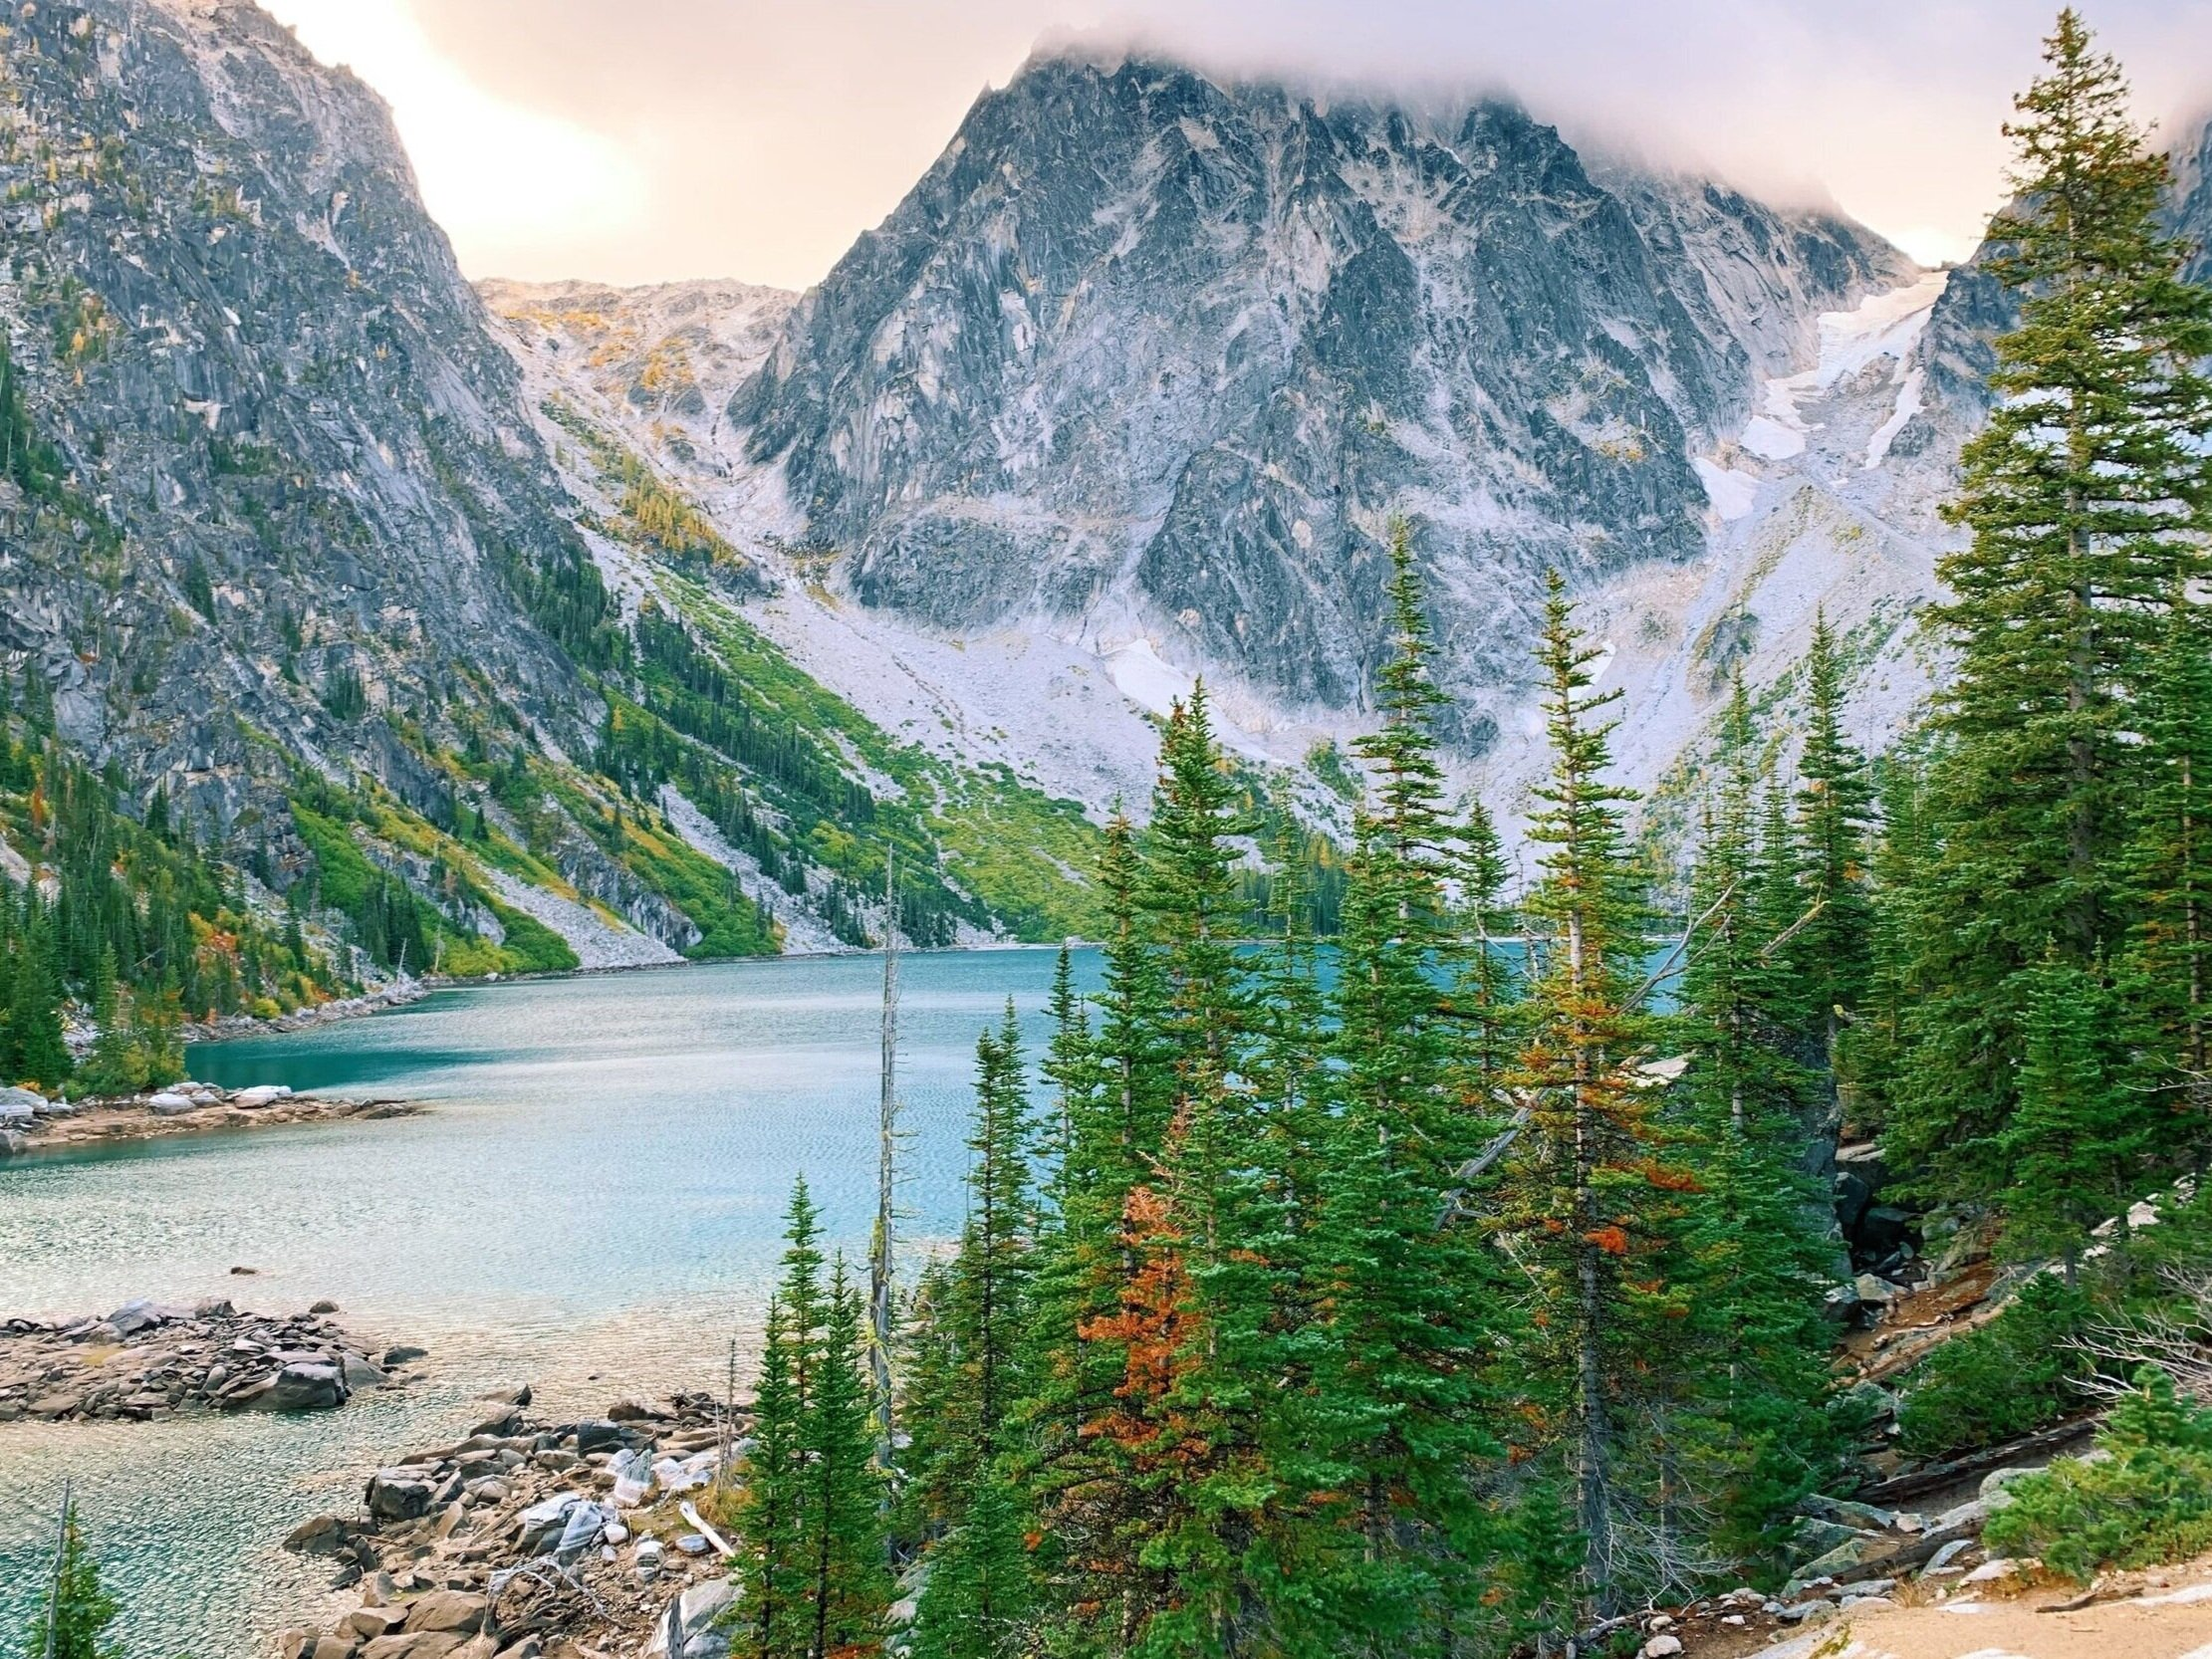 Cascade Mountains, WA. running Vacations - May 22th - 25th, 2020